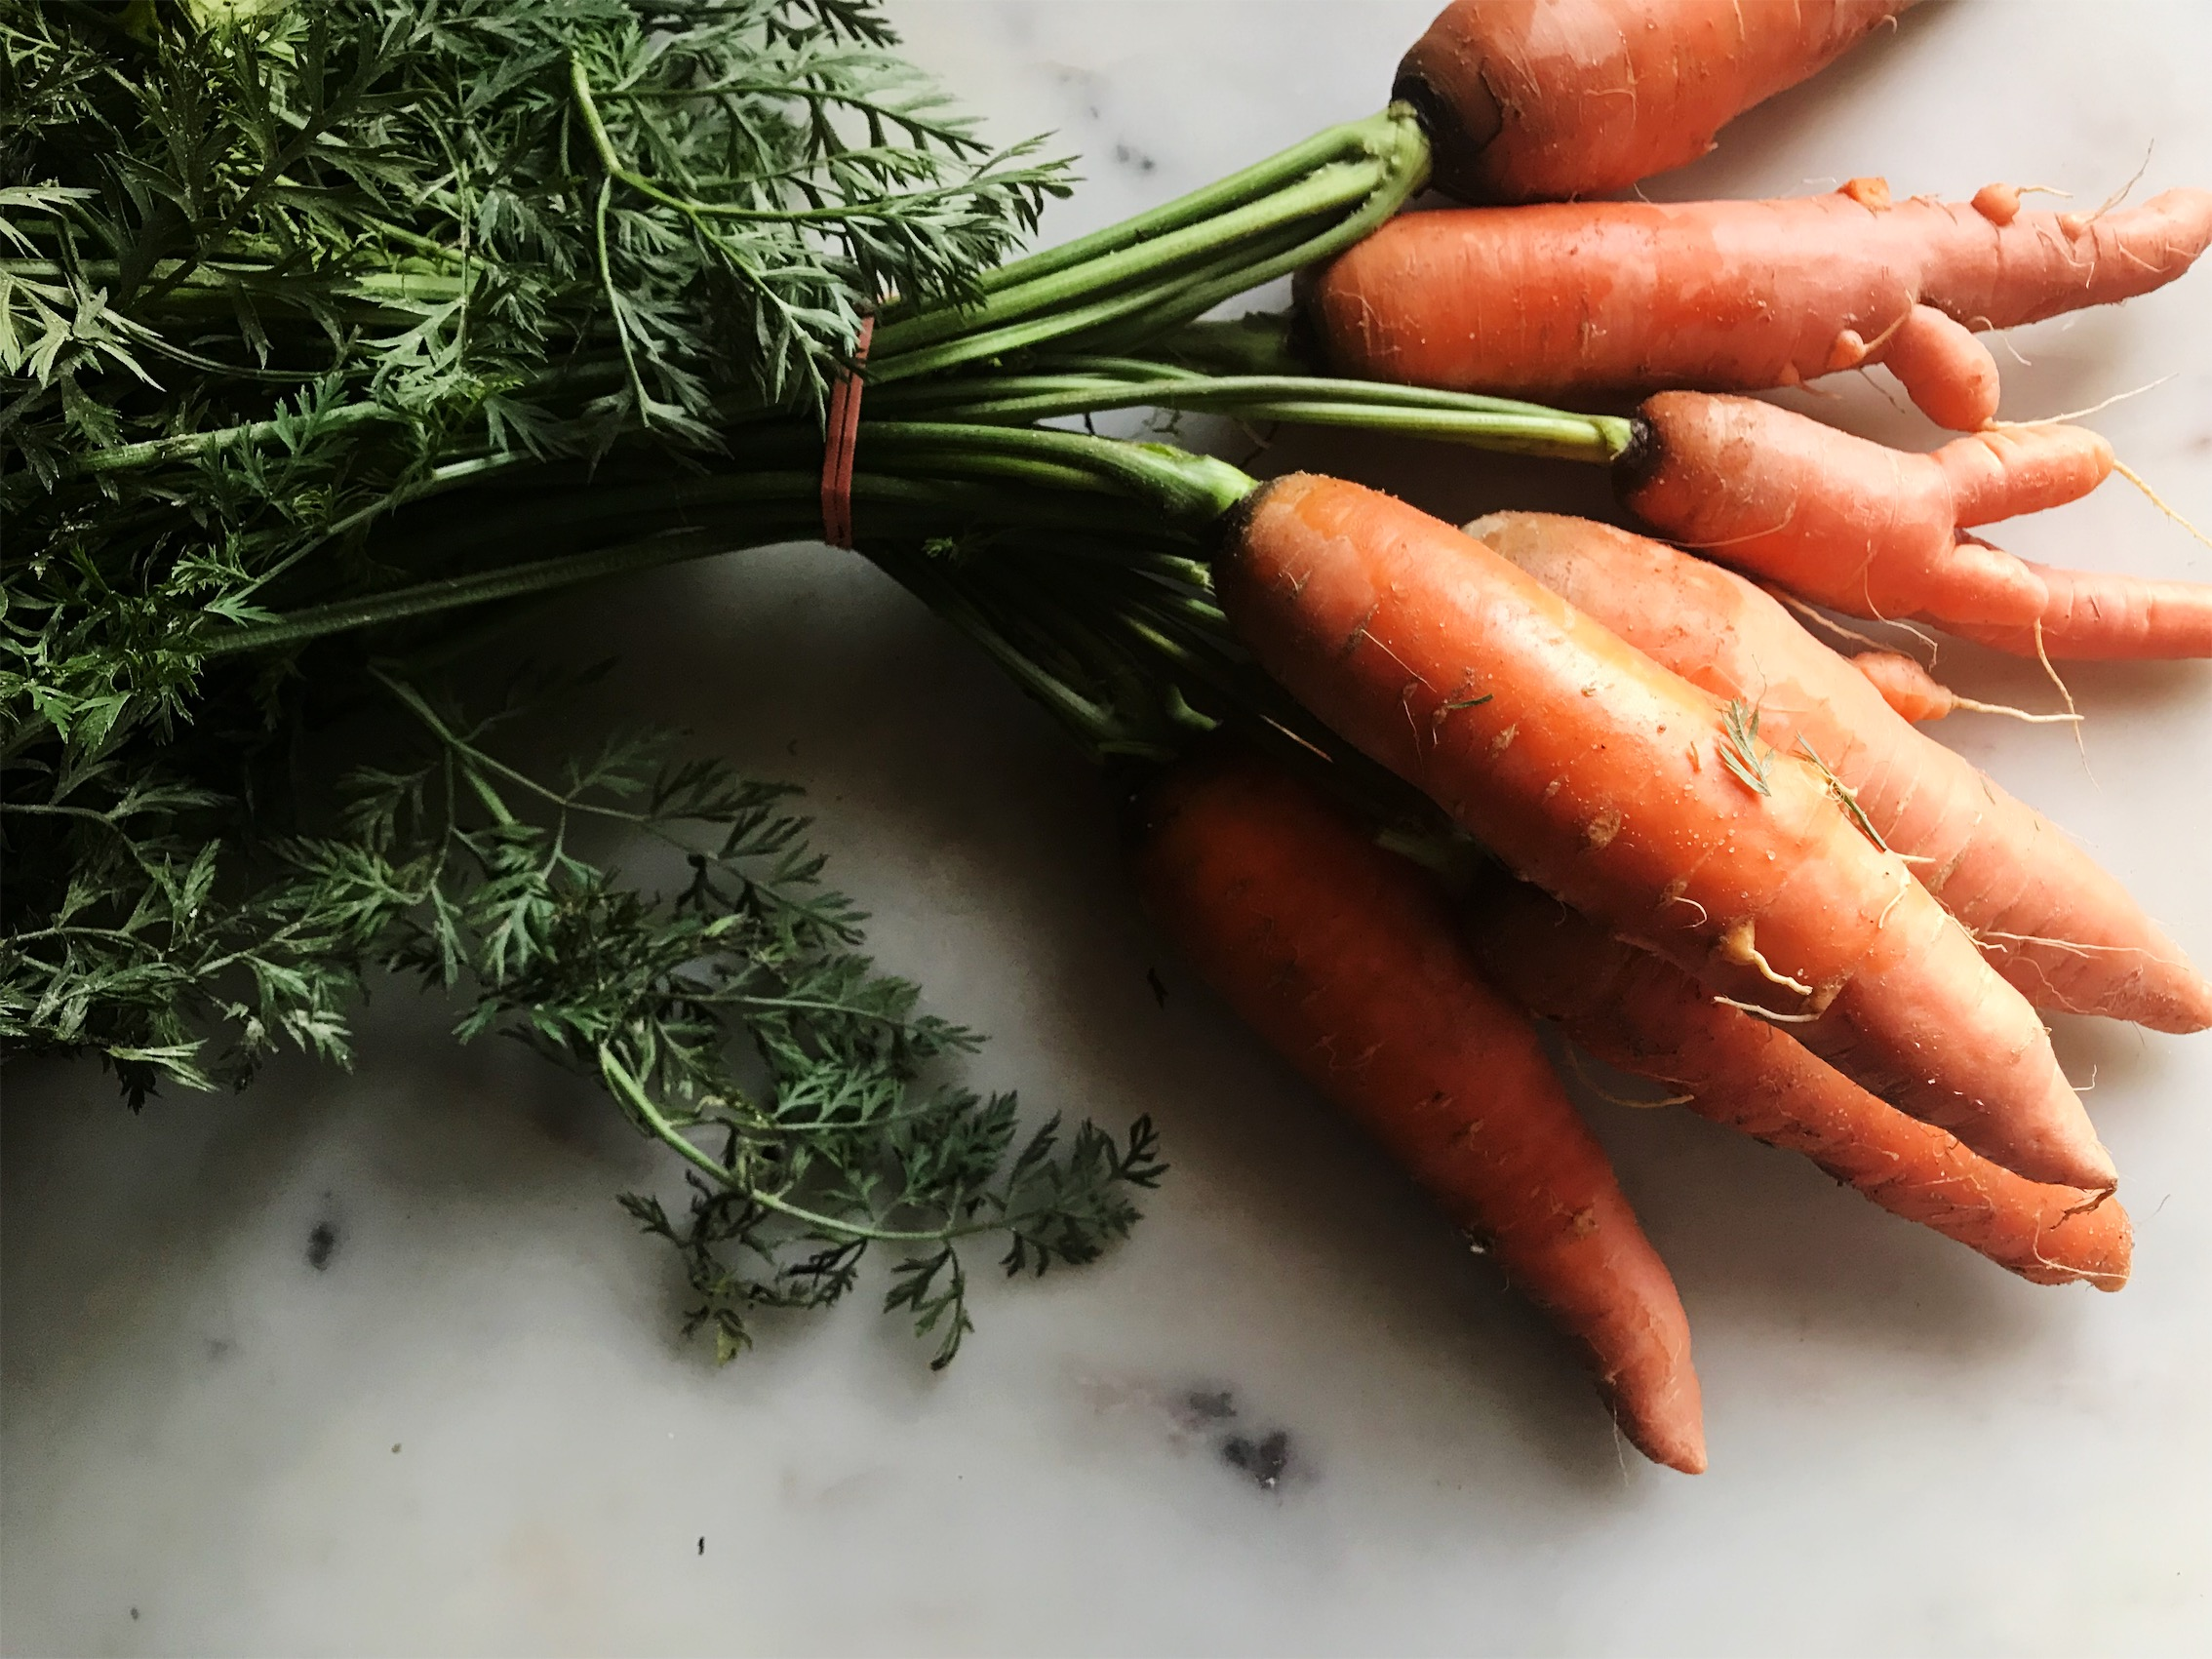 Perfectly imperfect carrots from the market.